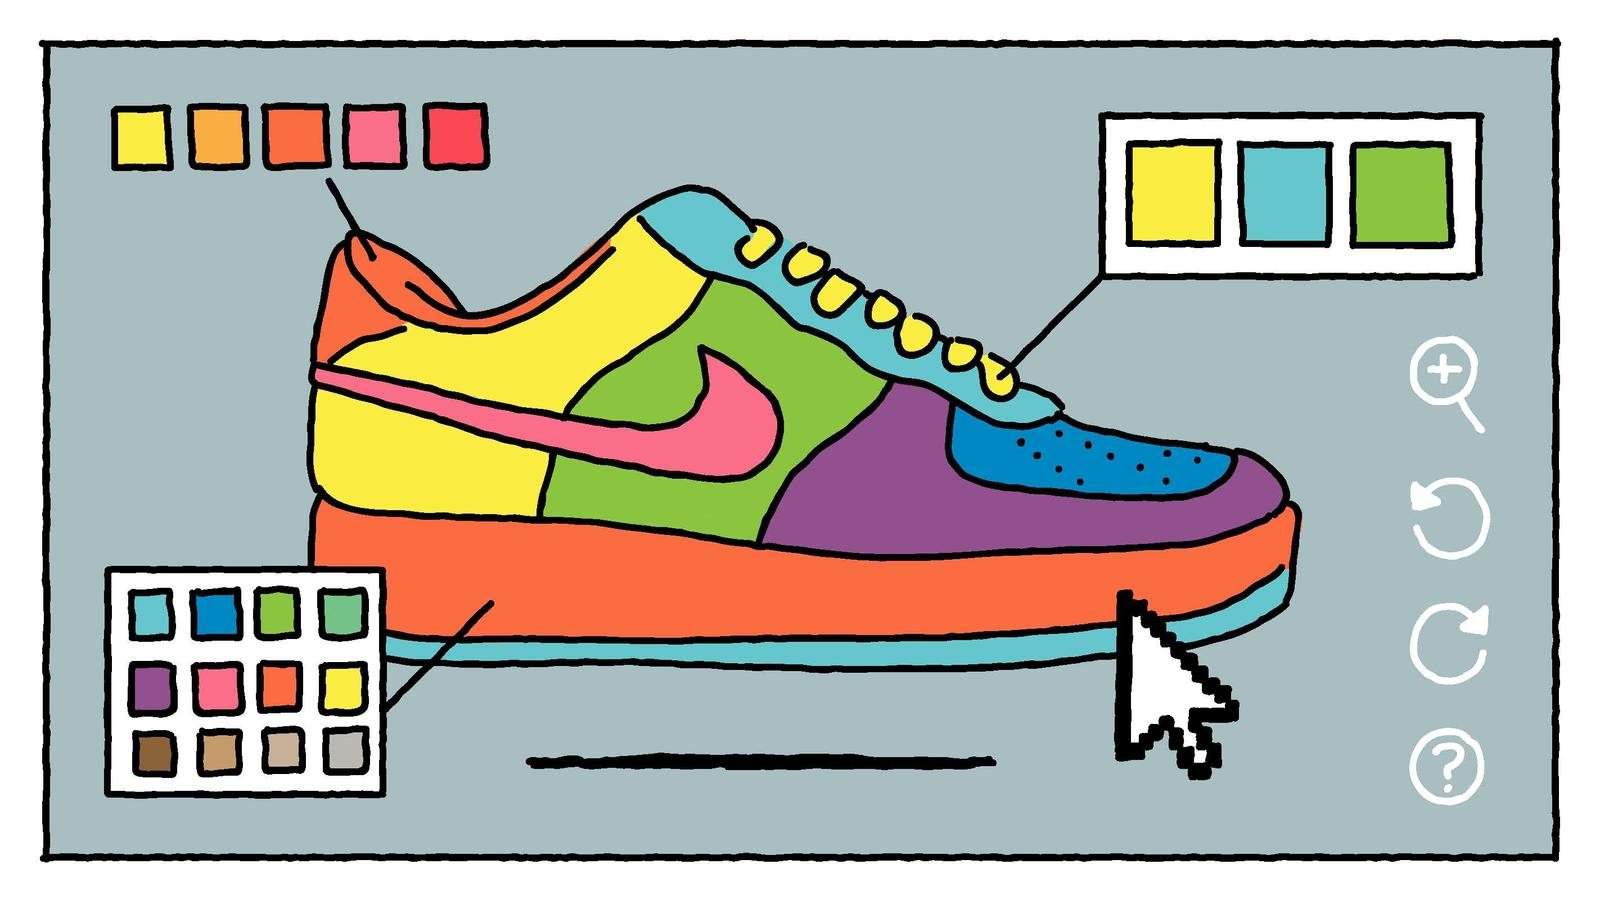 Relativo Género Imperio Inca  12 illustrations tell the story of Nike Air Force 1 | Collateral